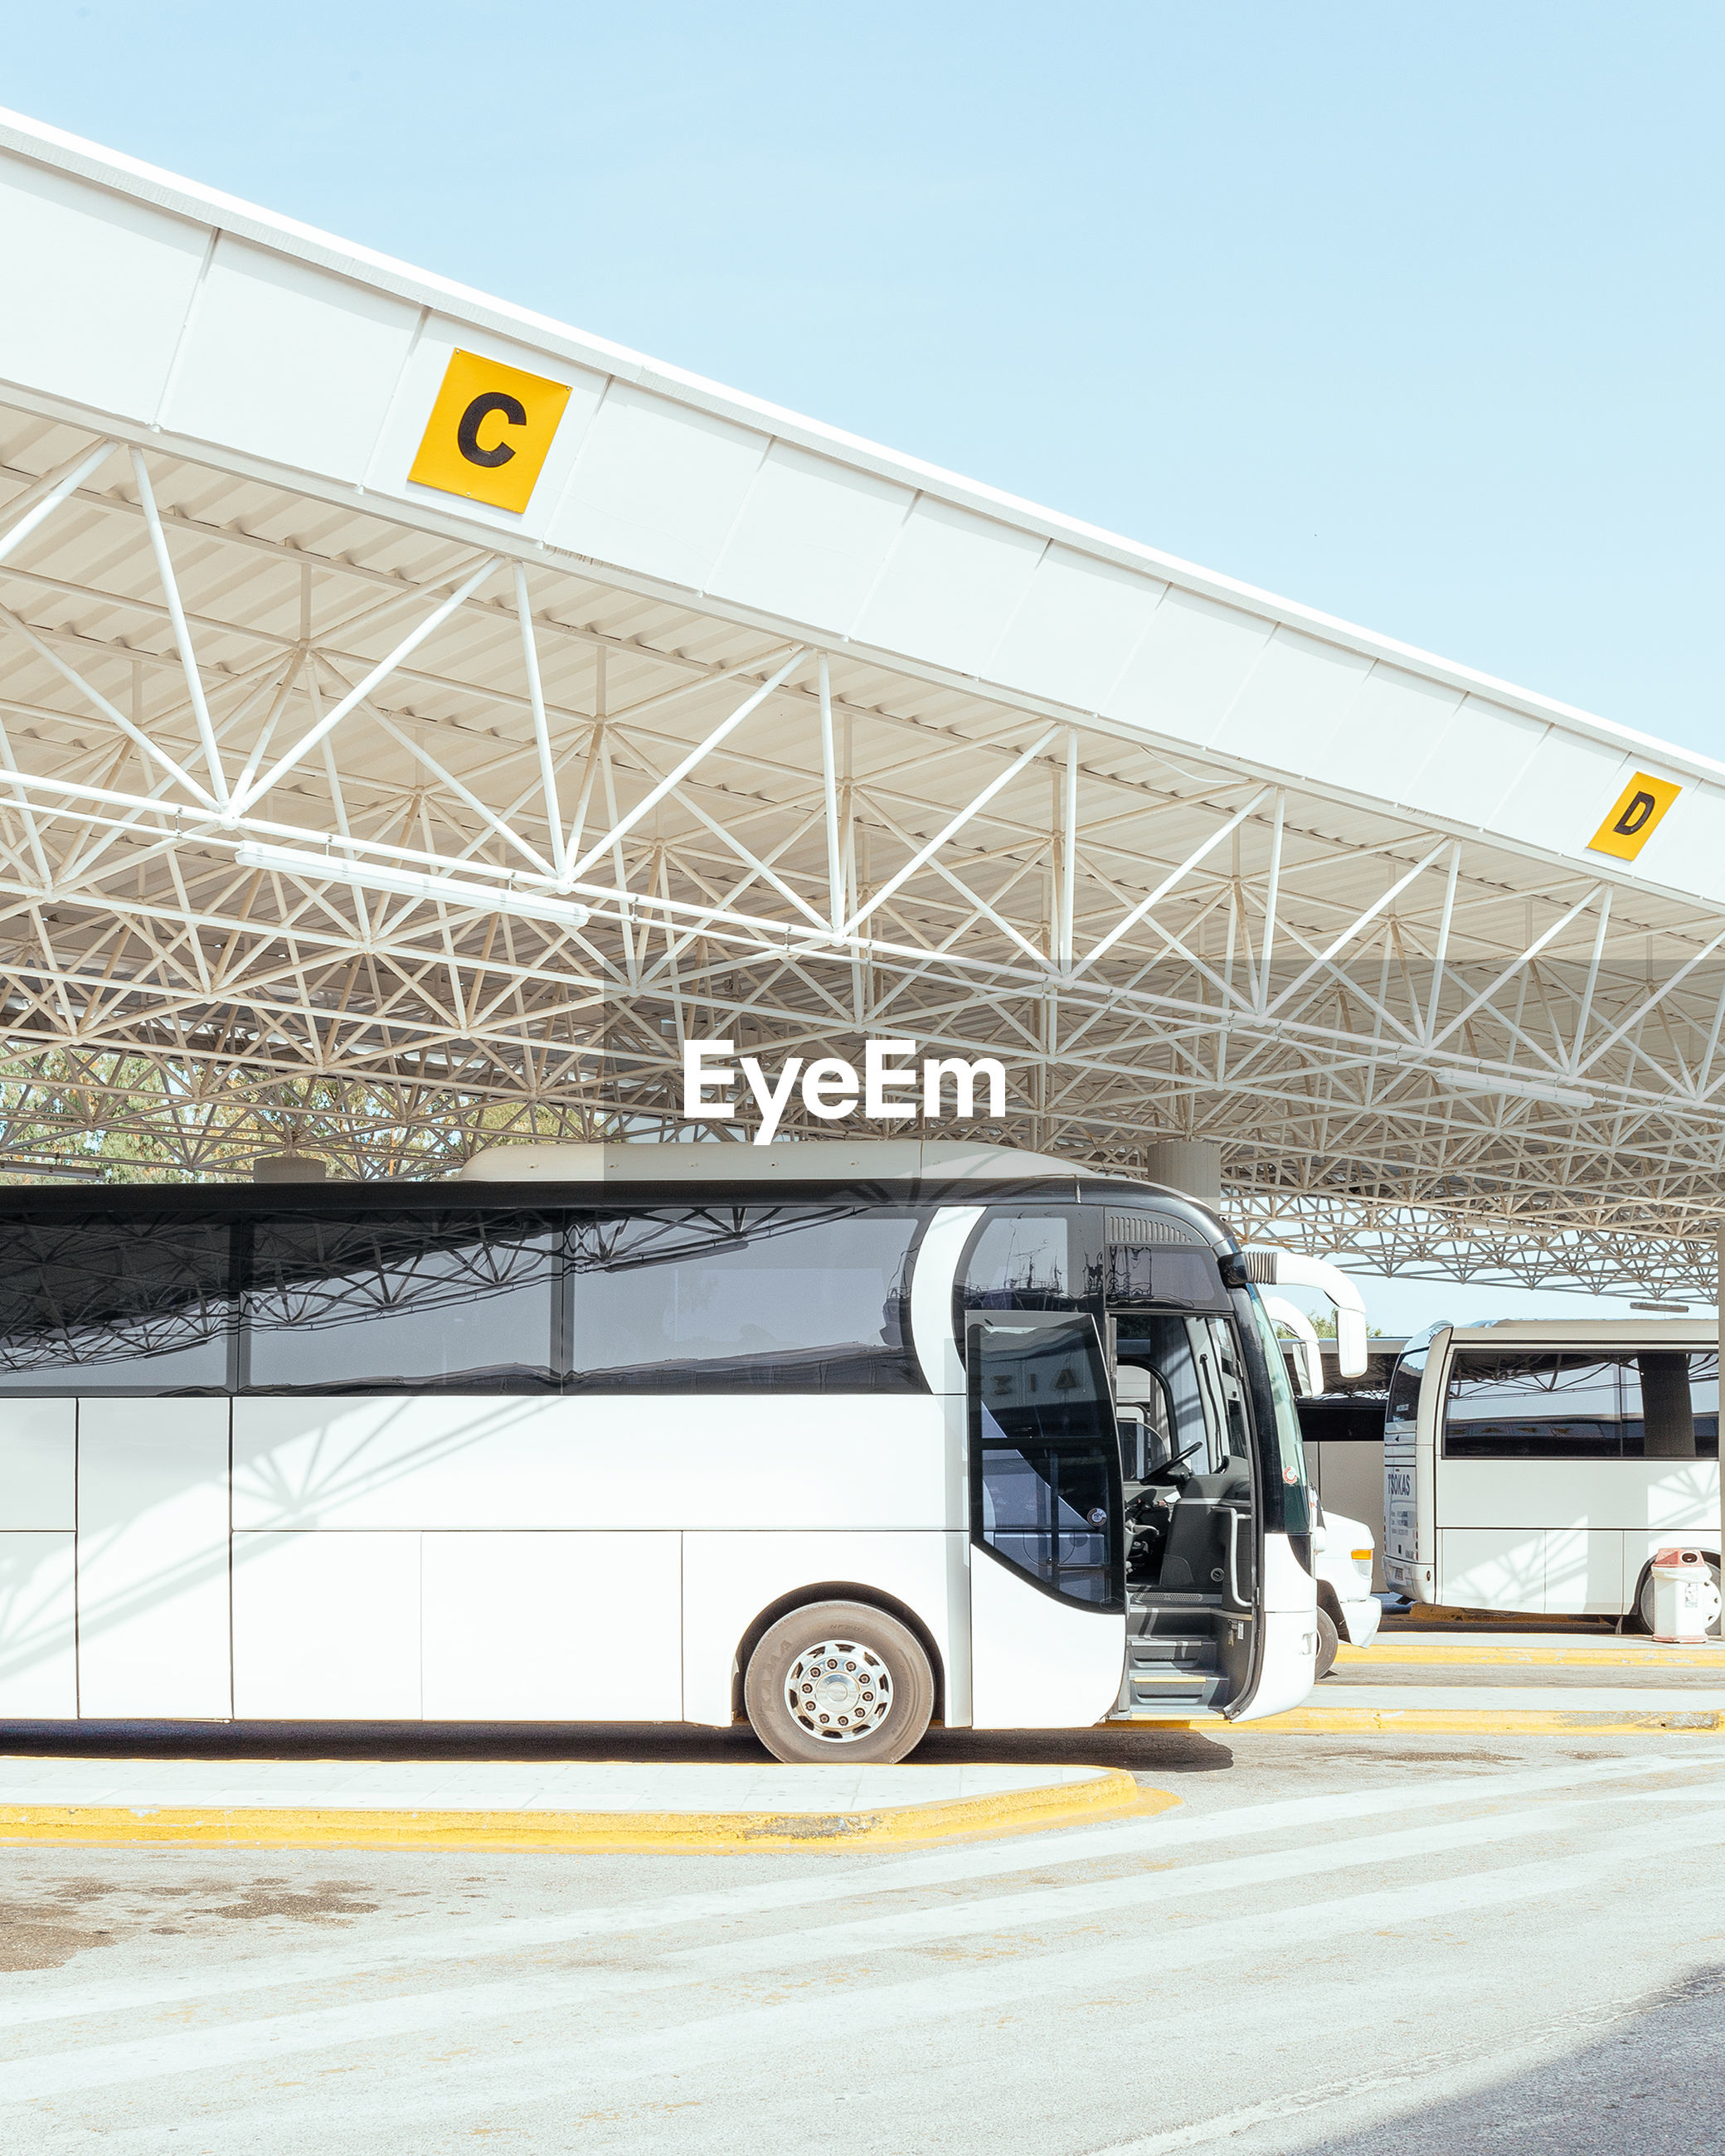 Bus parked by metal structure in city